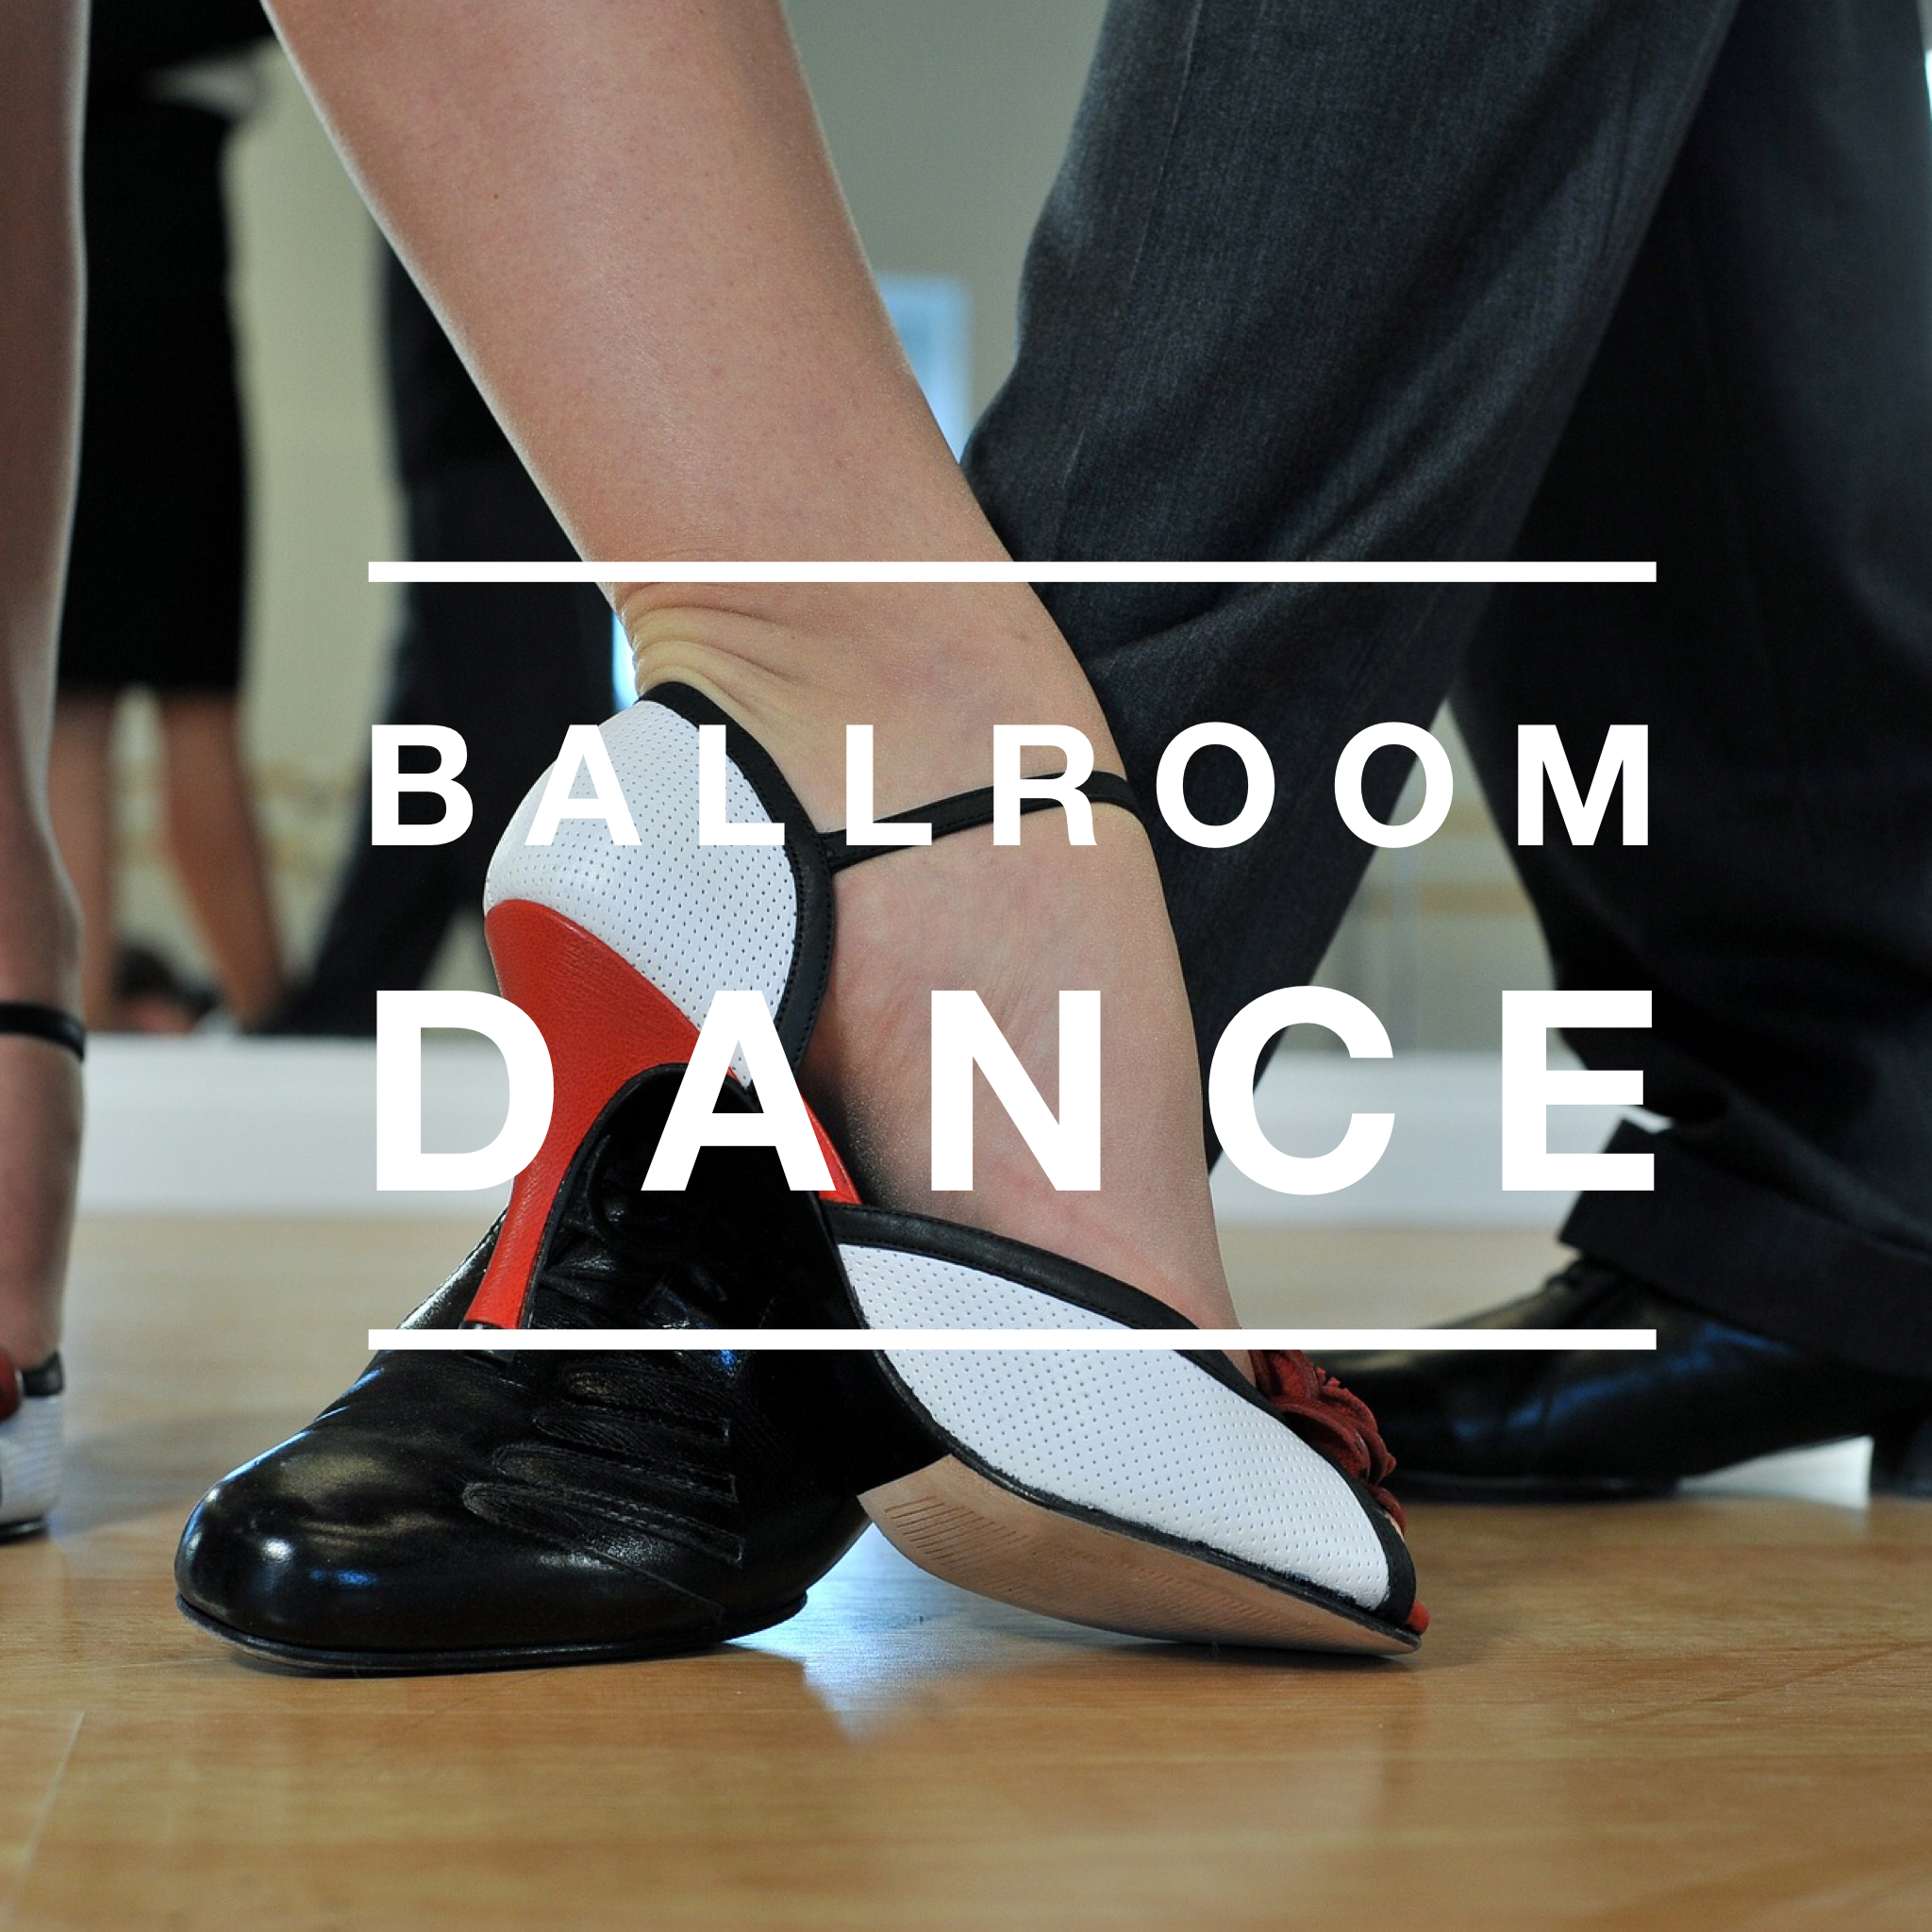 Ballroom Dance - *This class is open to Crossroads students only. Due to the large number of participants, we will not be able to allow non CRCS students to attend.$10.00 Registration fee per student at the first class. Only one time for the whole year.Each class is $5.00 and begins September 7th.Classes are each Friday from 1:30-2:30 in the CRCS gym.Fall Class Dates: September 7, 14, 21, 28. October 5, 12, 19 (Theme dance 26) November 2, 9, 16, 30 December 7.